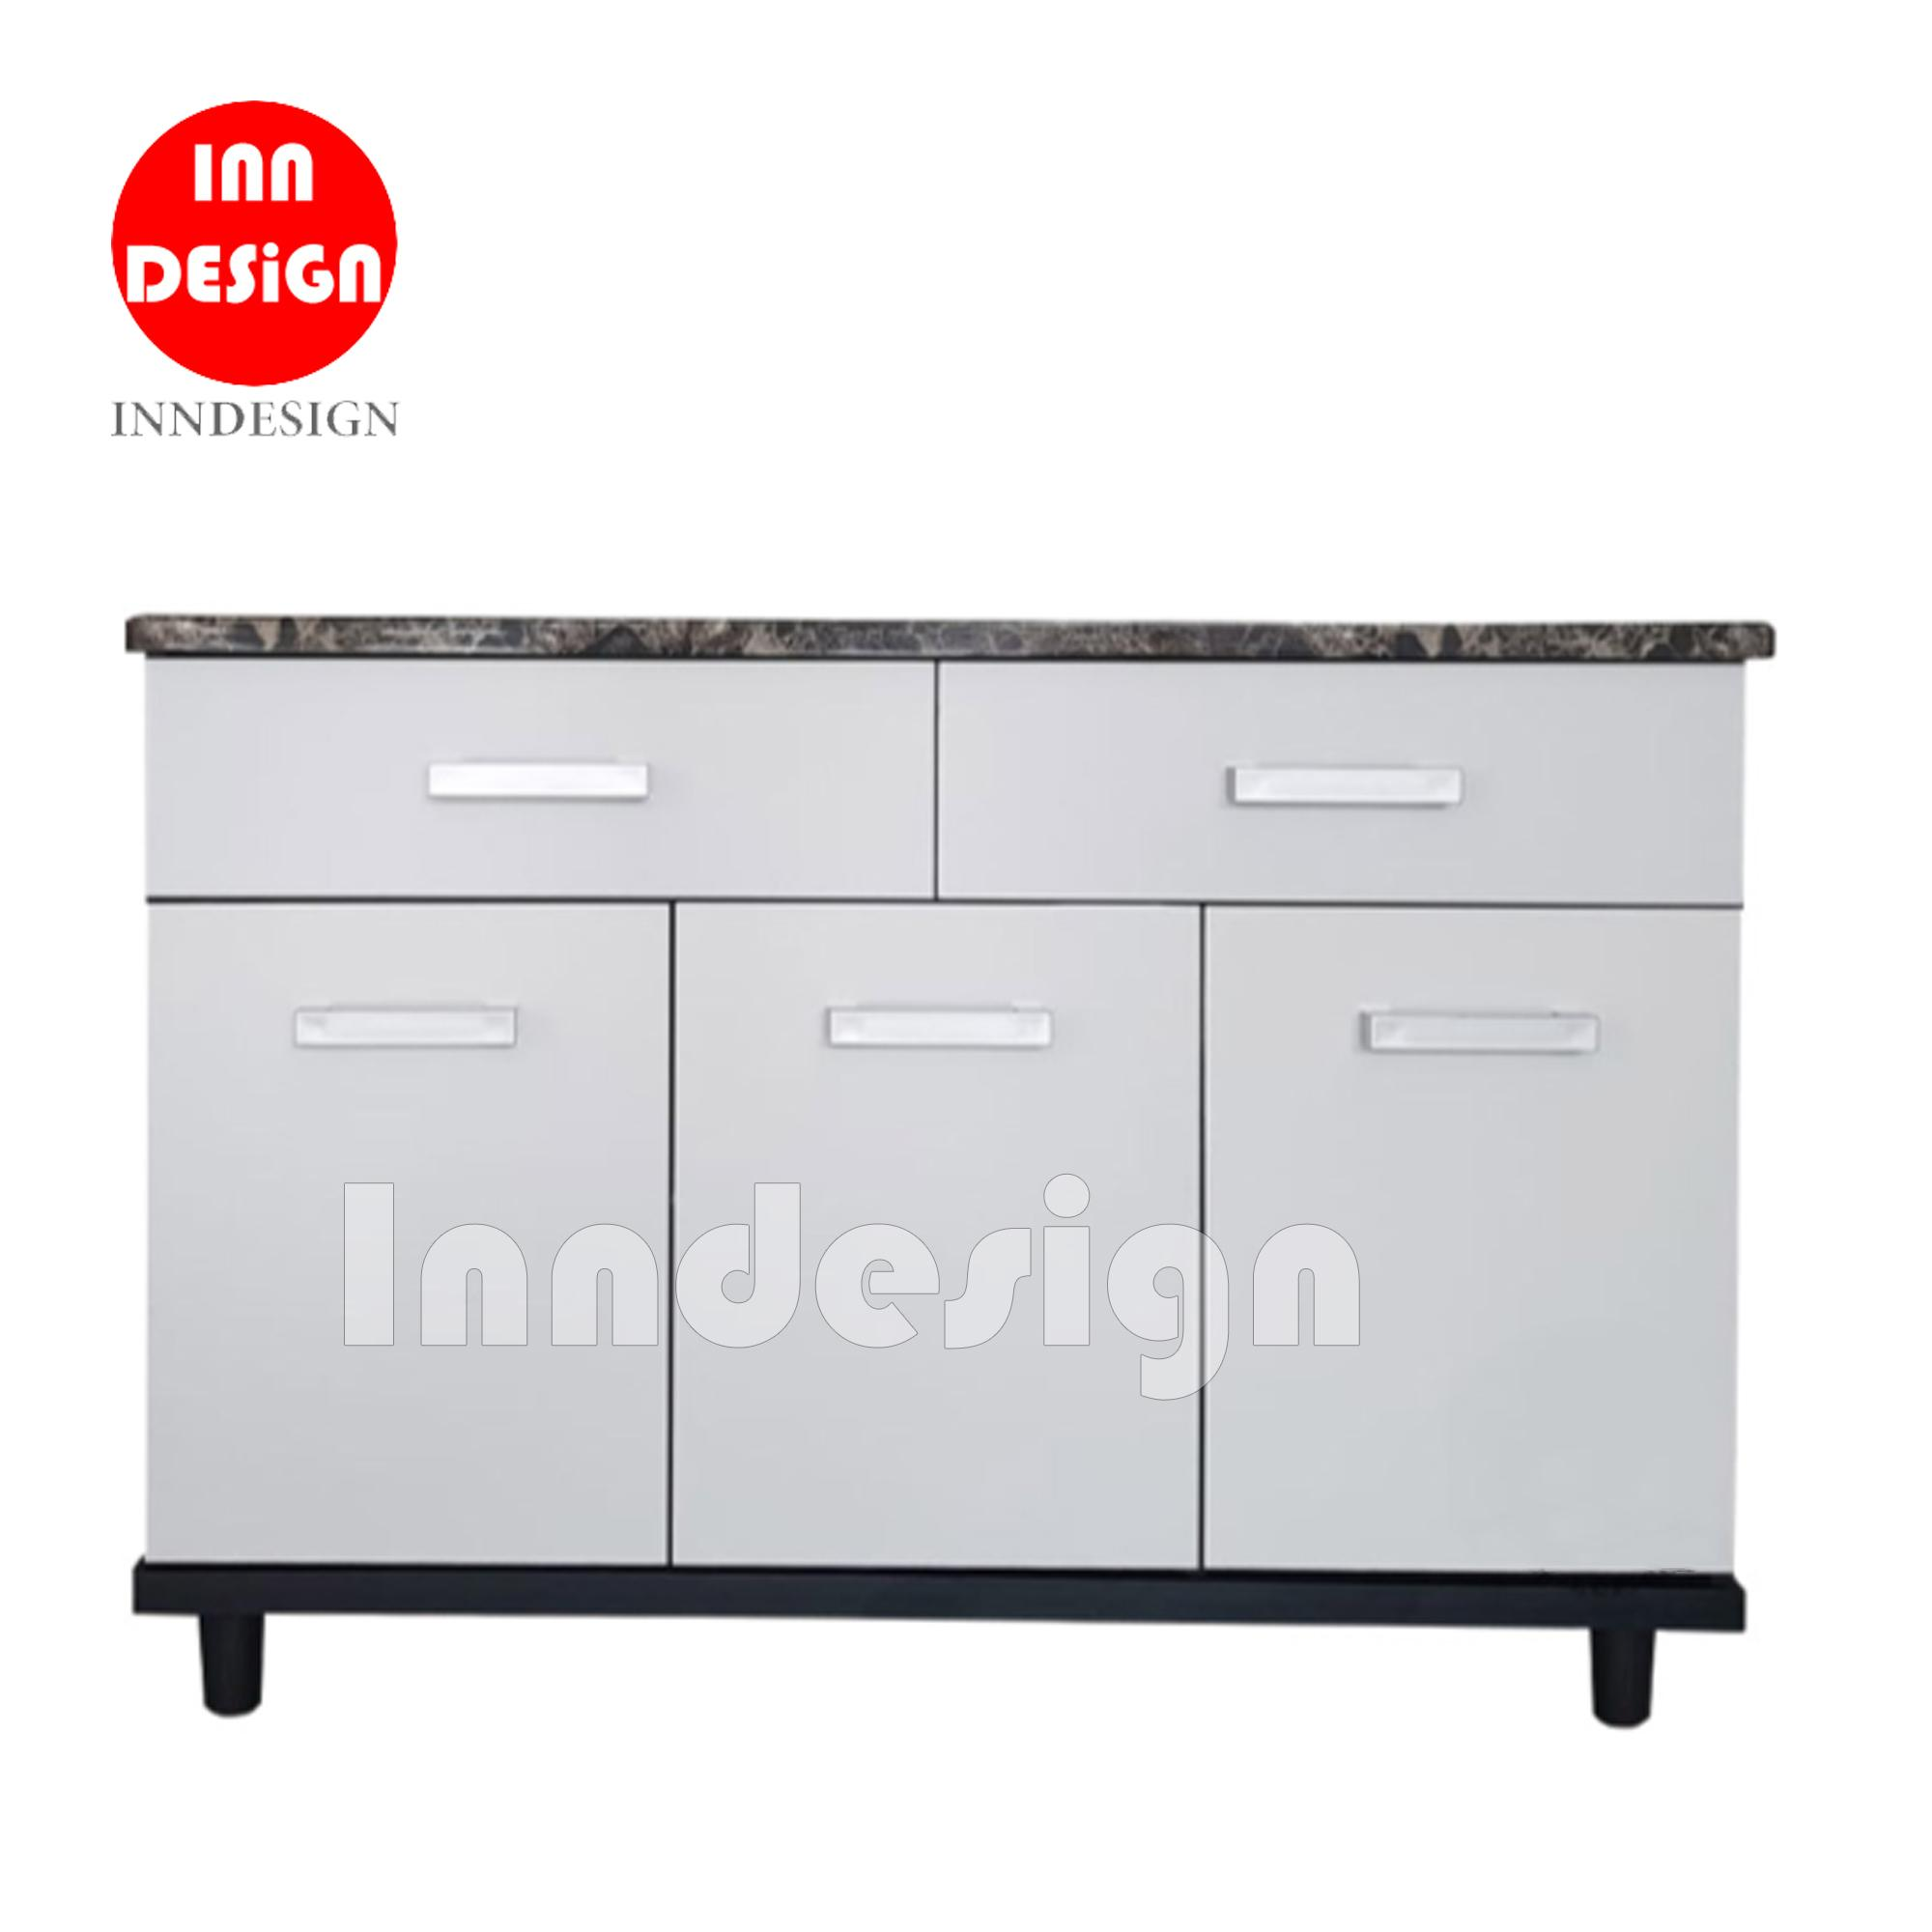 Aurora 3 Doors With 2 Drawers Kitchen Cabinet By Inndesign.